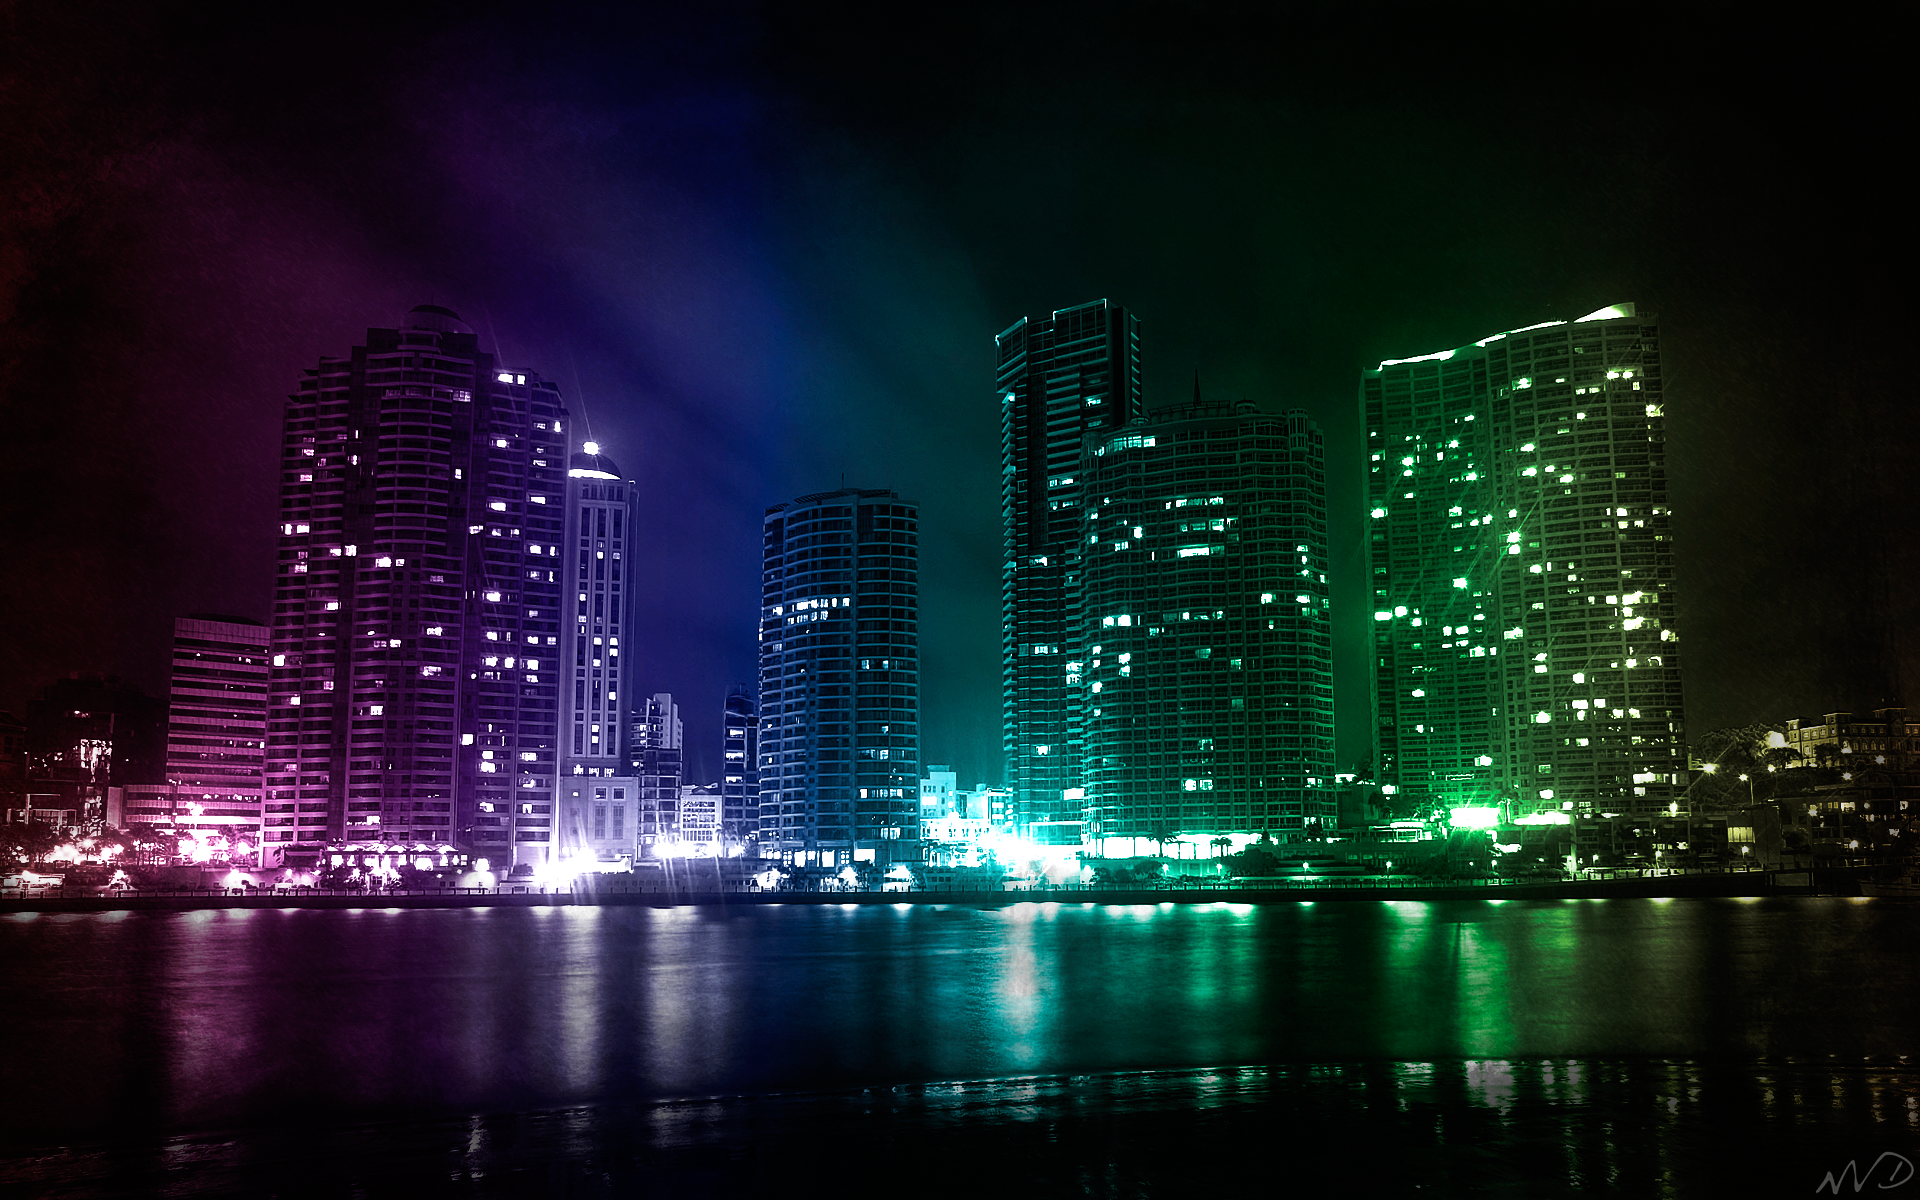 Hd Wallpaper Free city wallpaper